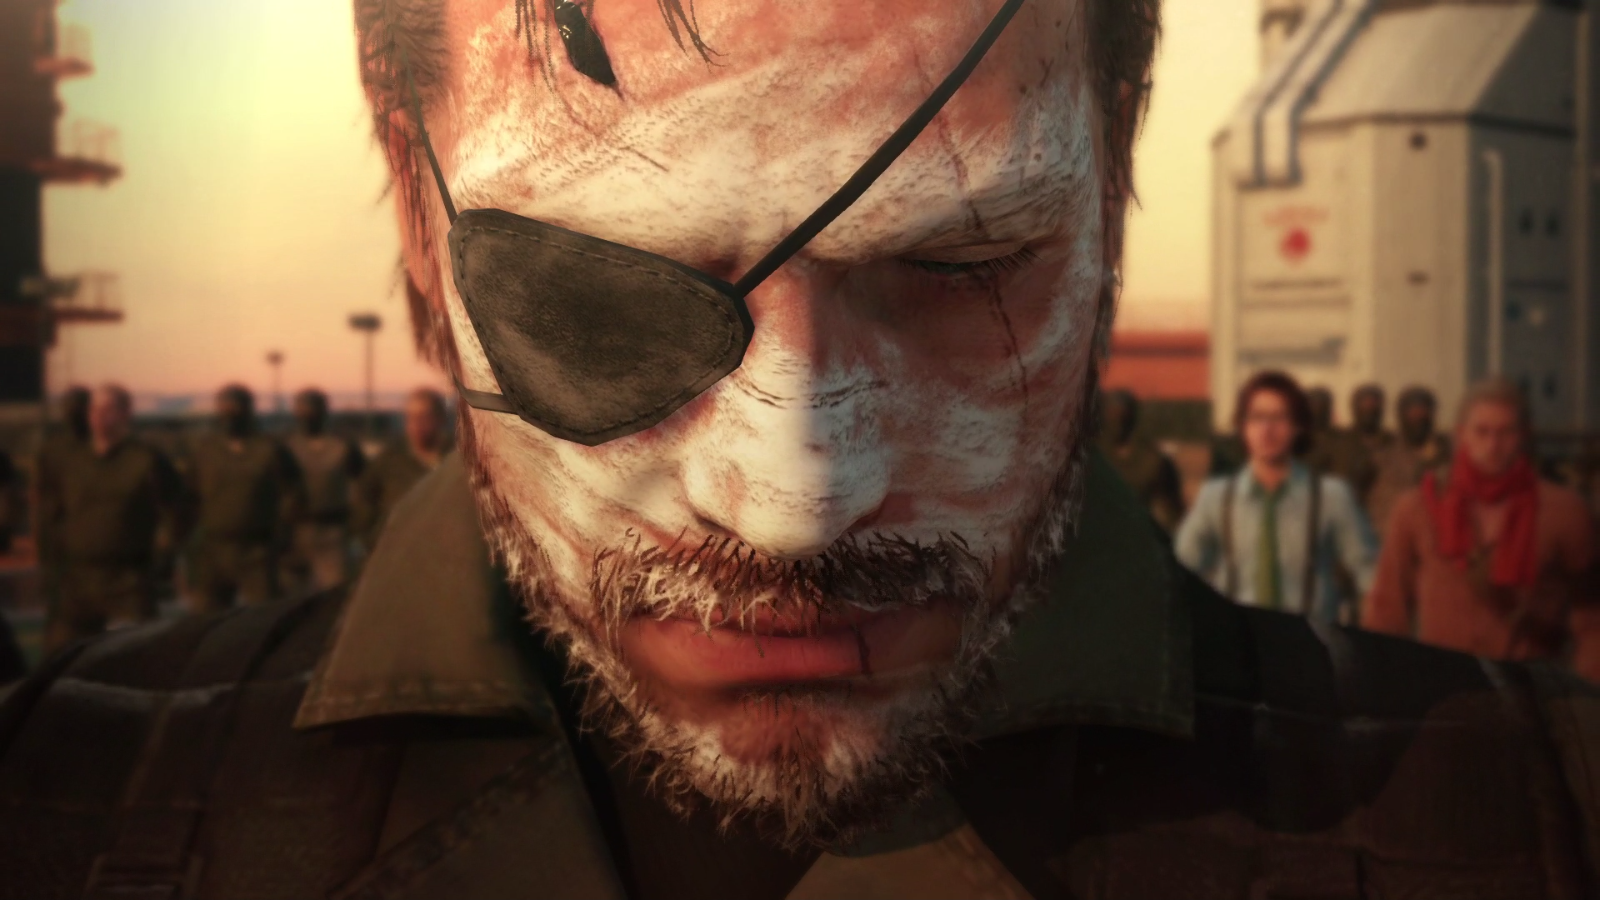 Metal Gear Solid V: The Phantom Pain, part 10